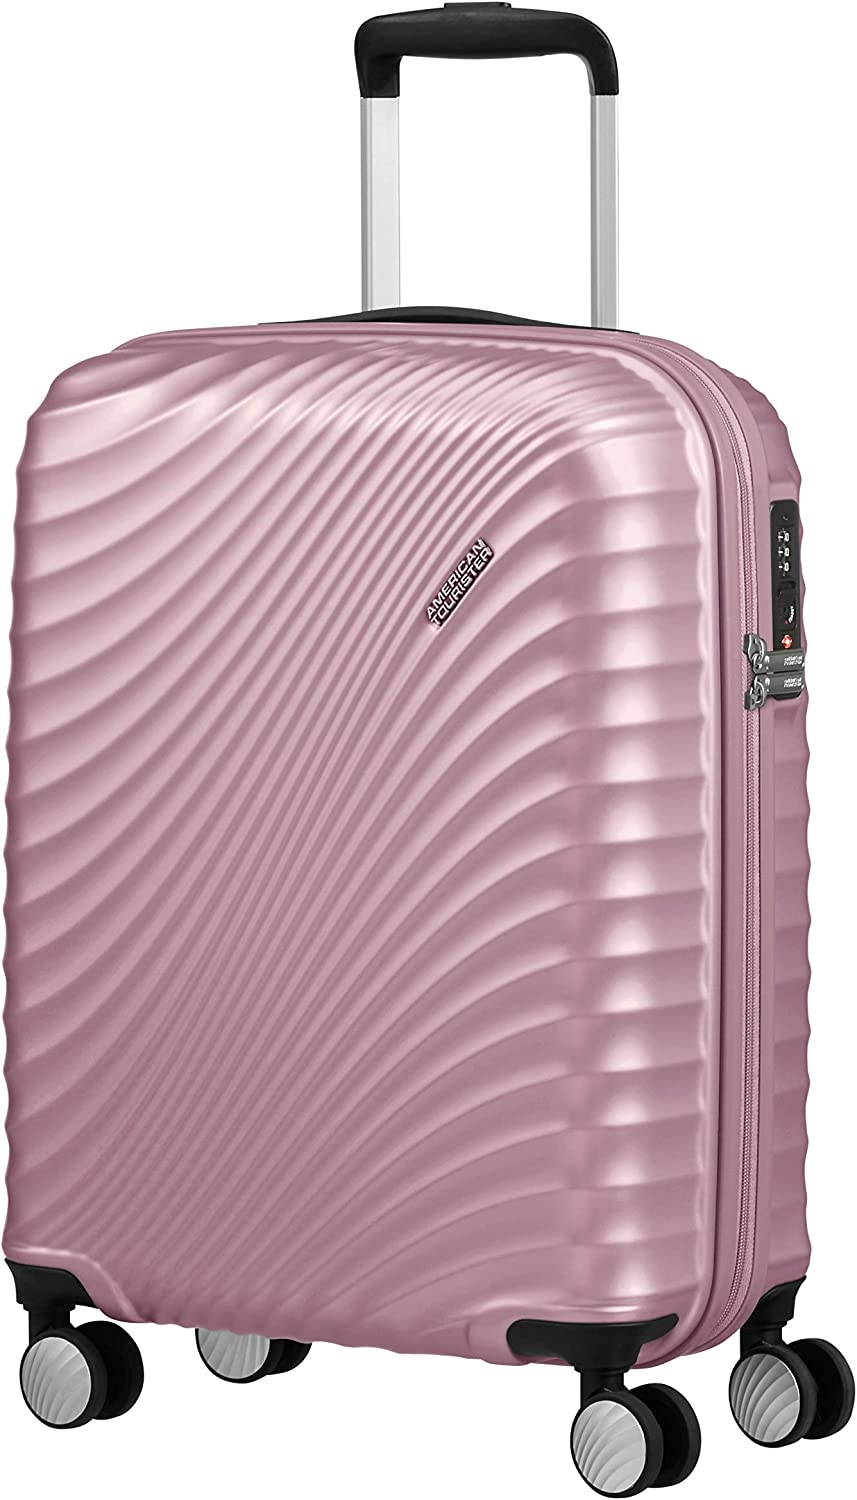 American Tourister Jetglam Spinner S Equipaje de Mano, 55 cm, 35.5 L, Rosa (Metallic Pink)